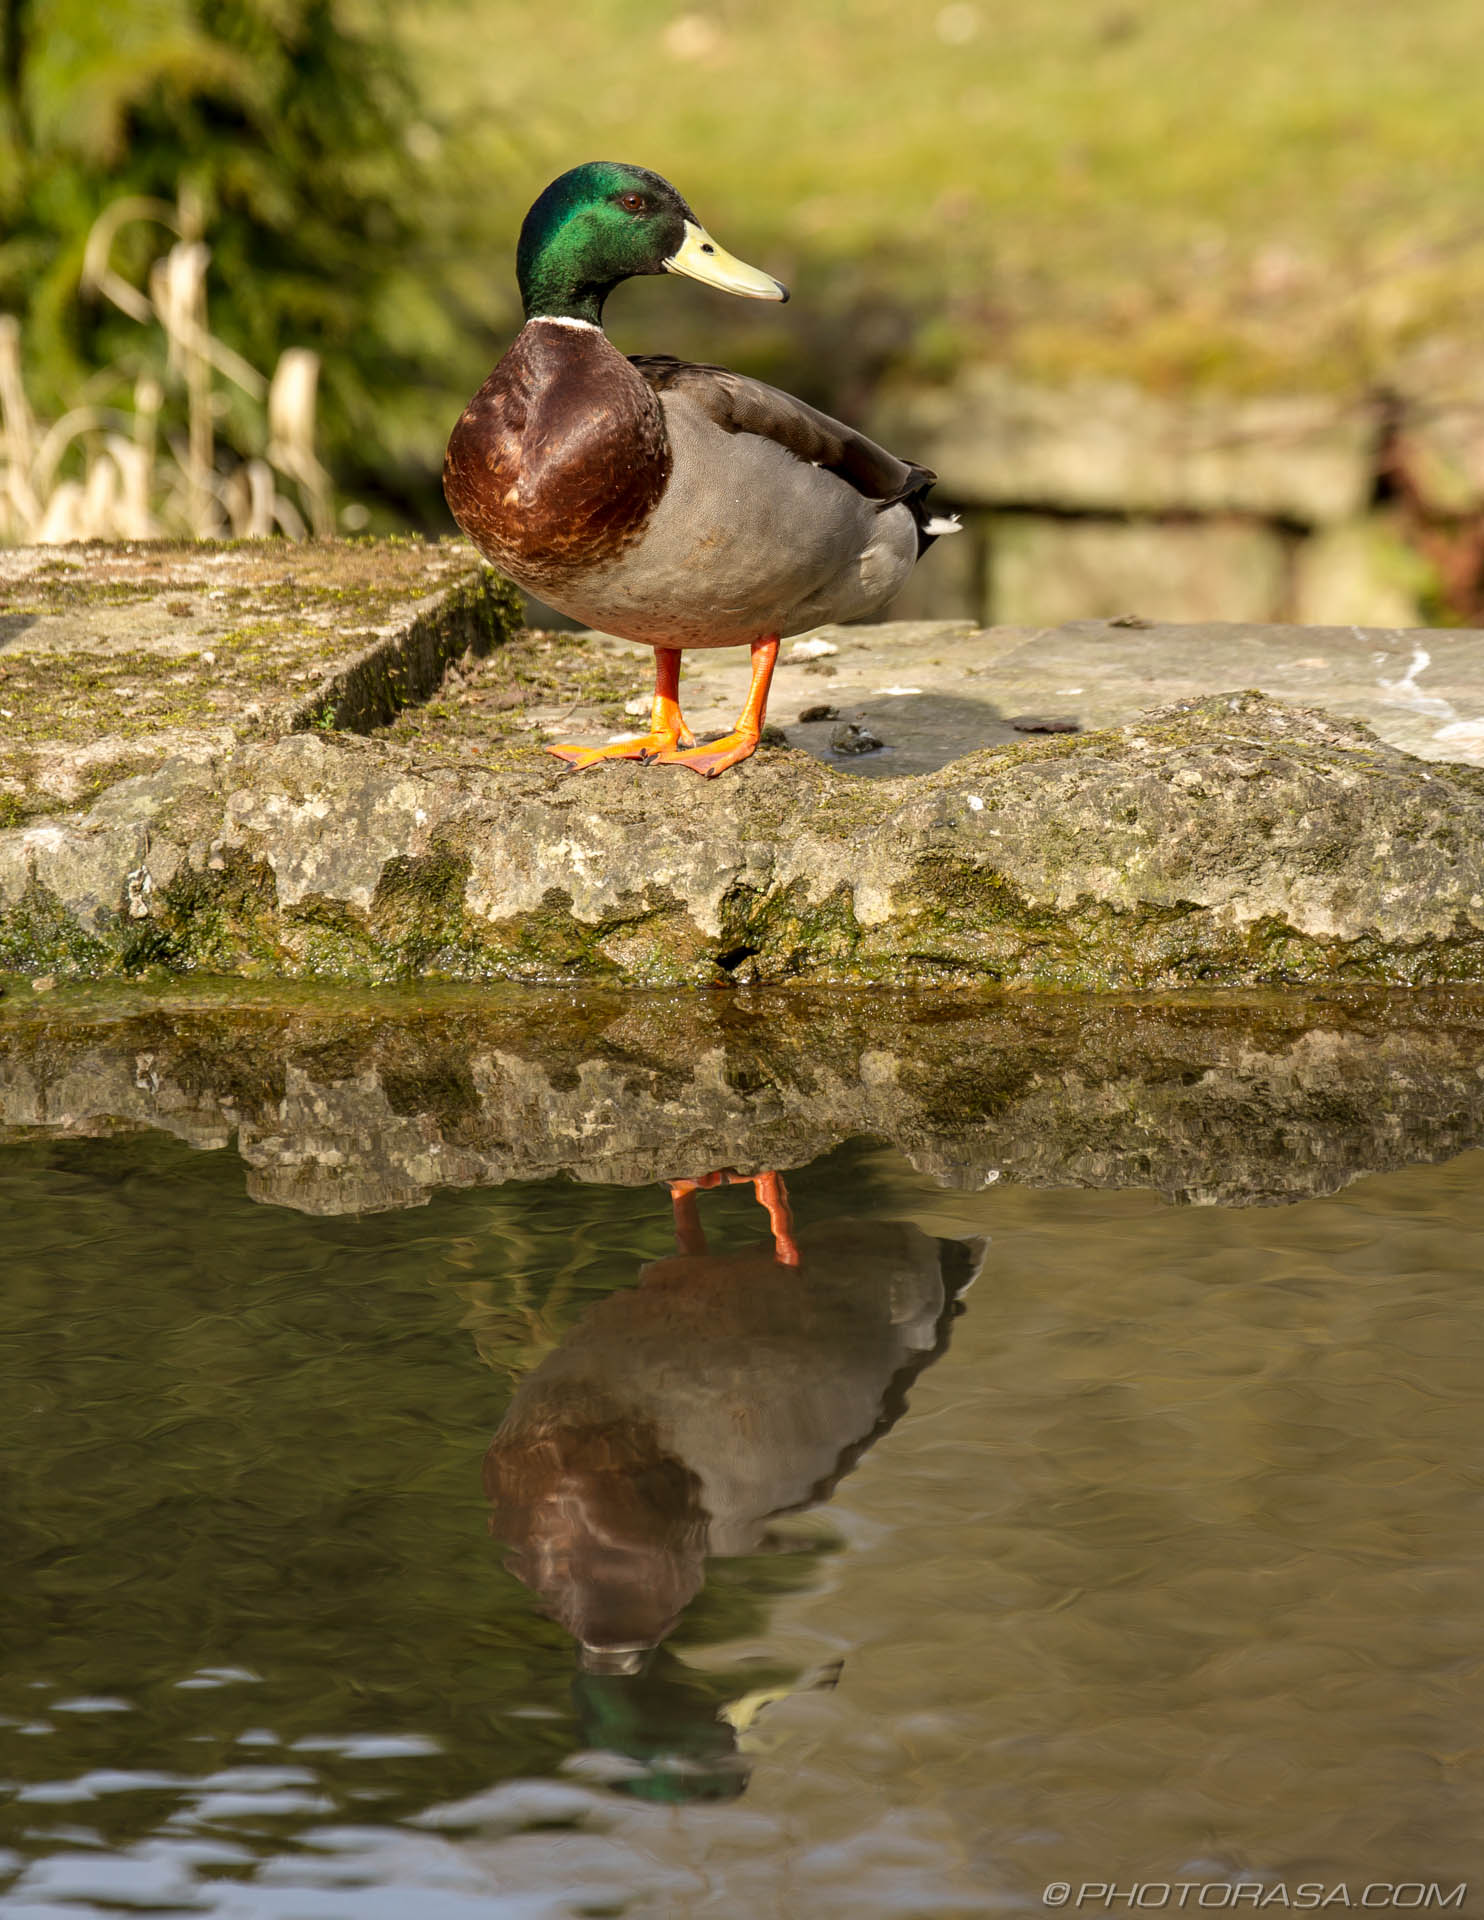 http://photorasa.com/mallard-ducks/drake-at-the-waters-edge/